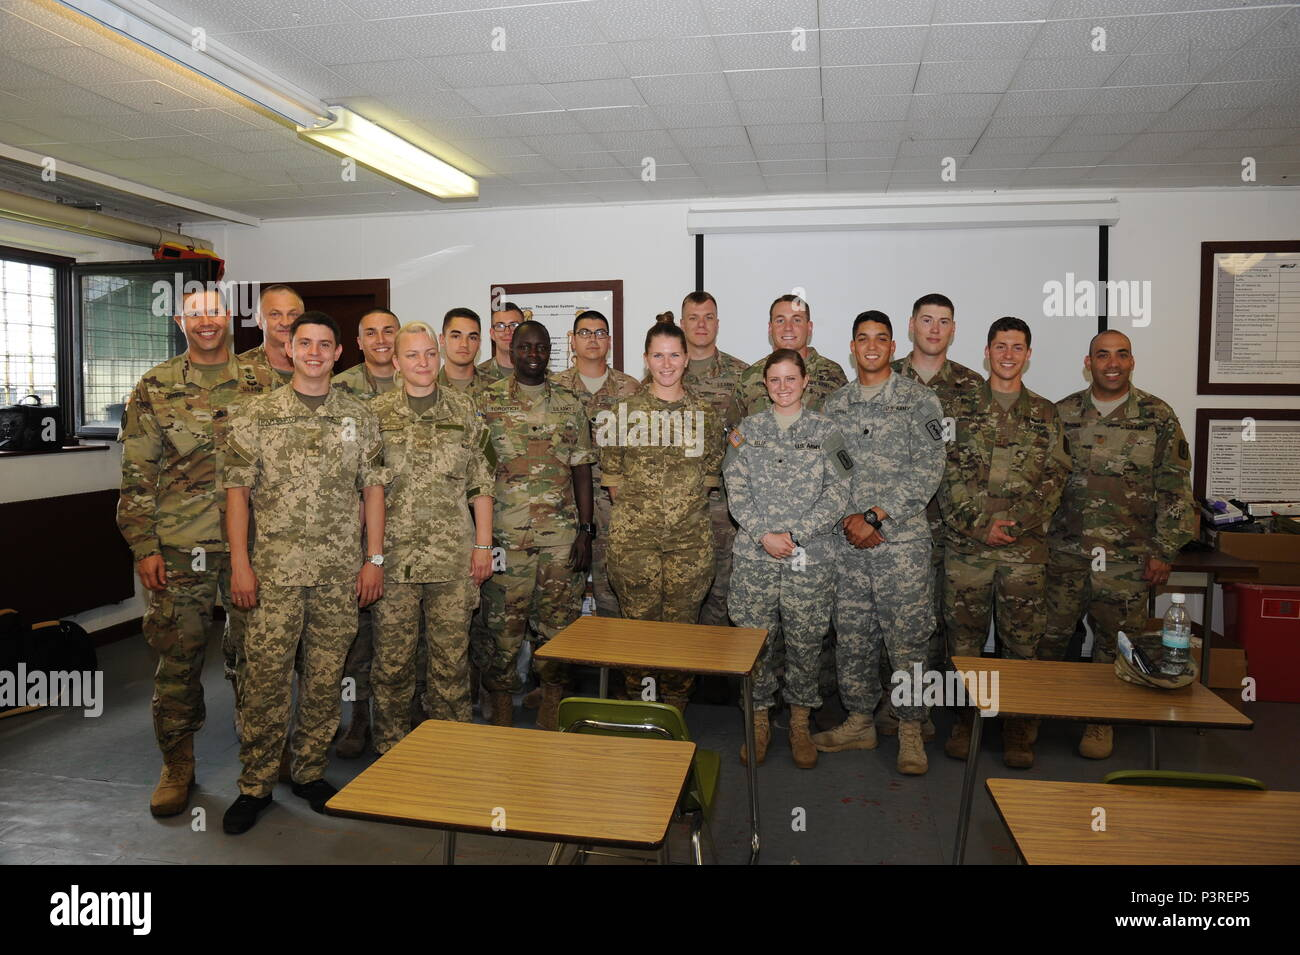 A Group Photo Of The Officers Instructors And Attendees From Landstuhl Regional Medical Center And 557th Medical Company Area Support With Ukraine Military Medical Officers Of The Medical Sustainment Class At The